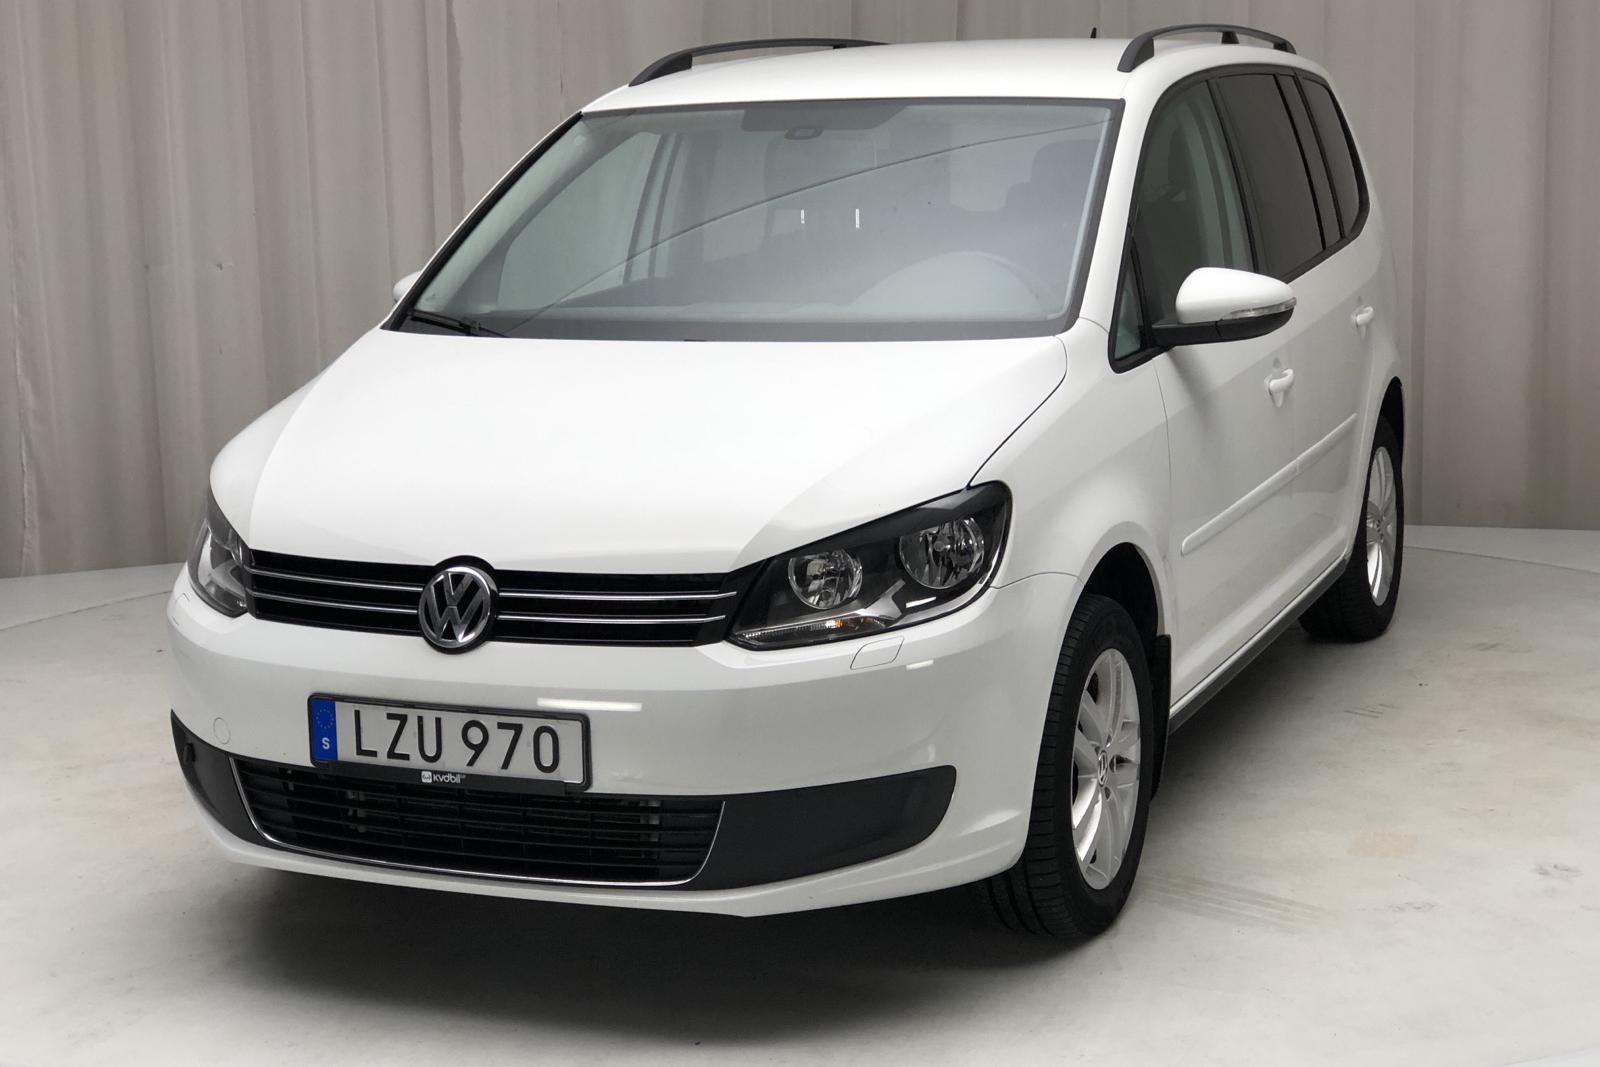 VW Touran 1.4 TGI EcoFuel (150hk) - 55 432 km - Manual - white - 2015